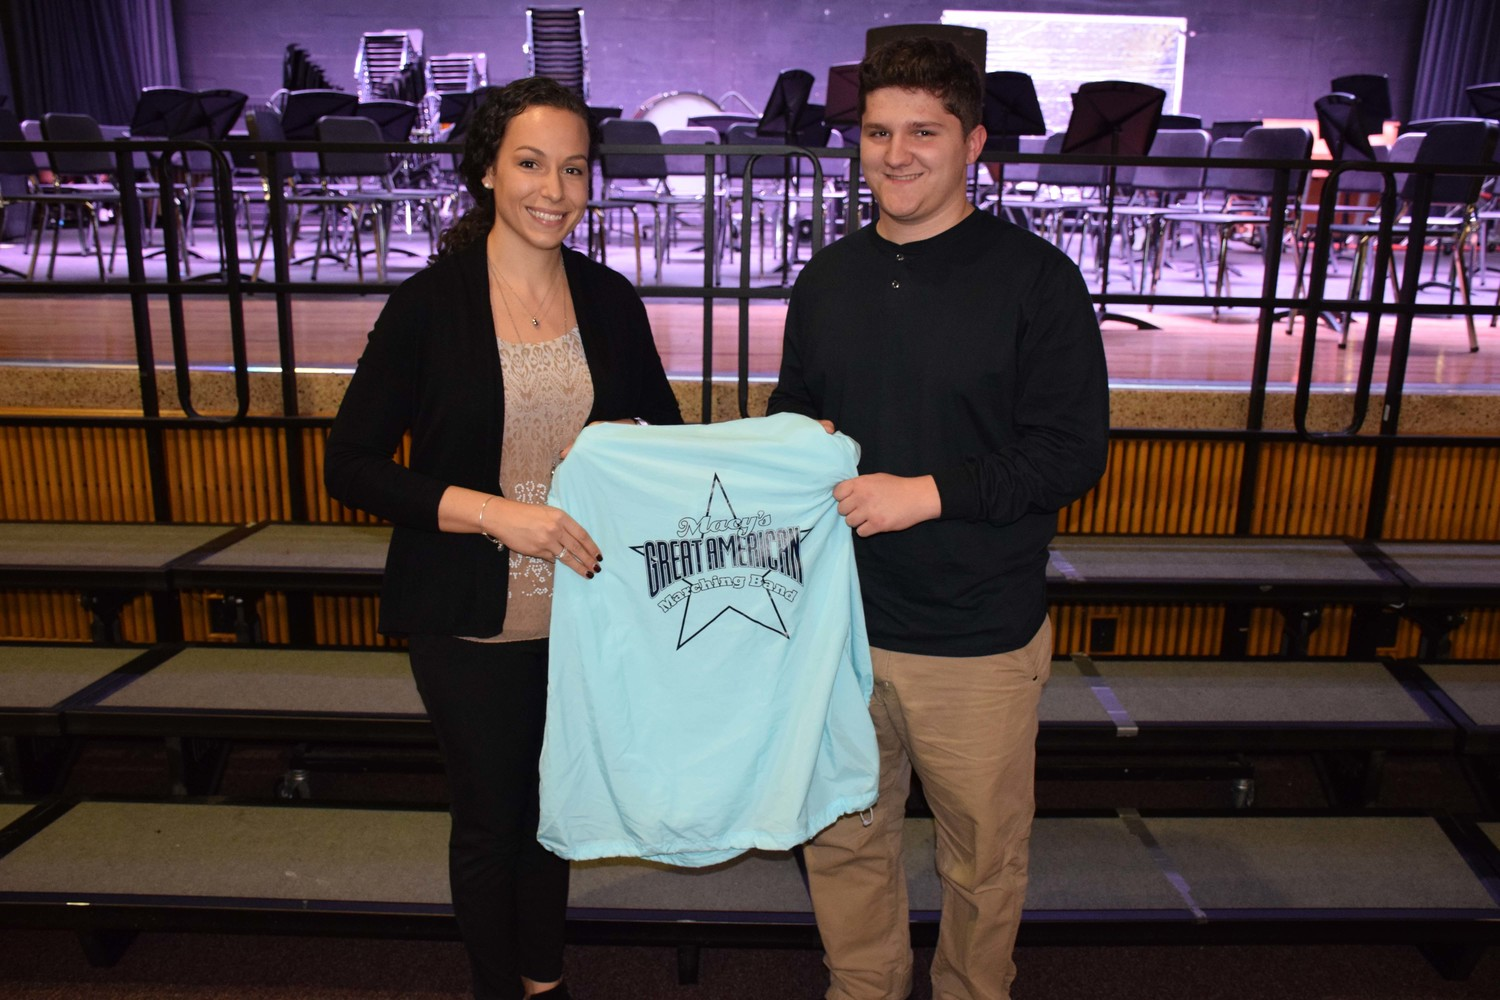 Junior Matthew Michaelis was encouraged by W.T. Clarke High School music teacher Molly Ingoglia to submit an application to earn placement on the Macy's Great American Marching Band.